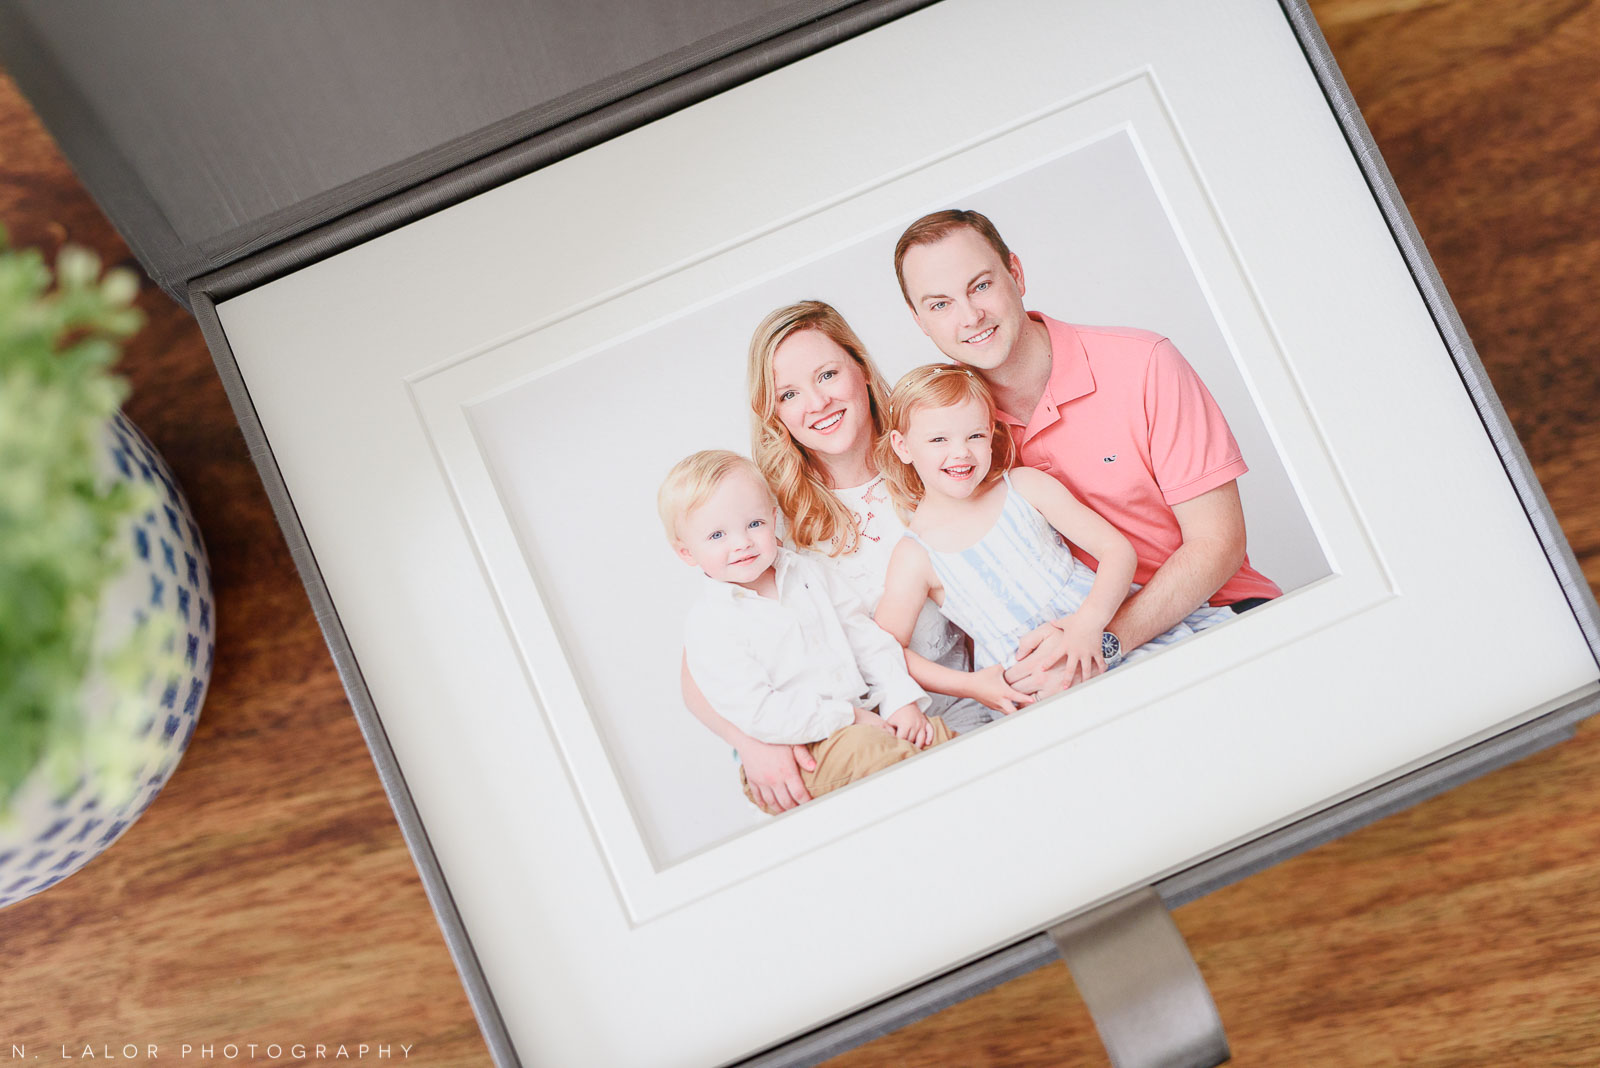 Image of a family heirloom presentation box with a printed family portrait. Studio photo by N. Lalor Photography in Greenwich, Connecticut.